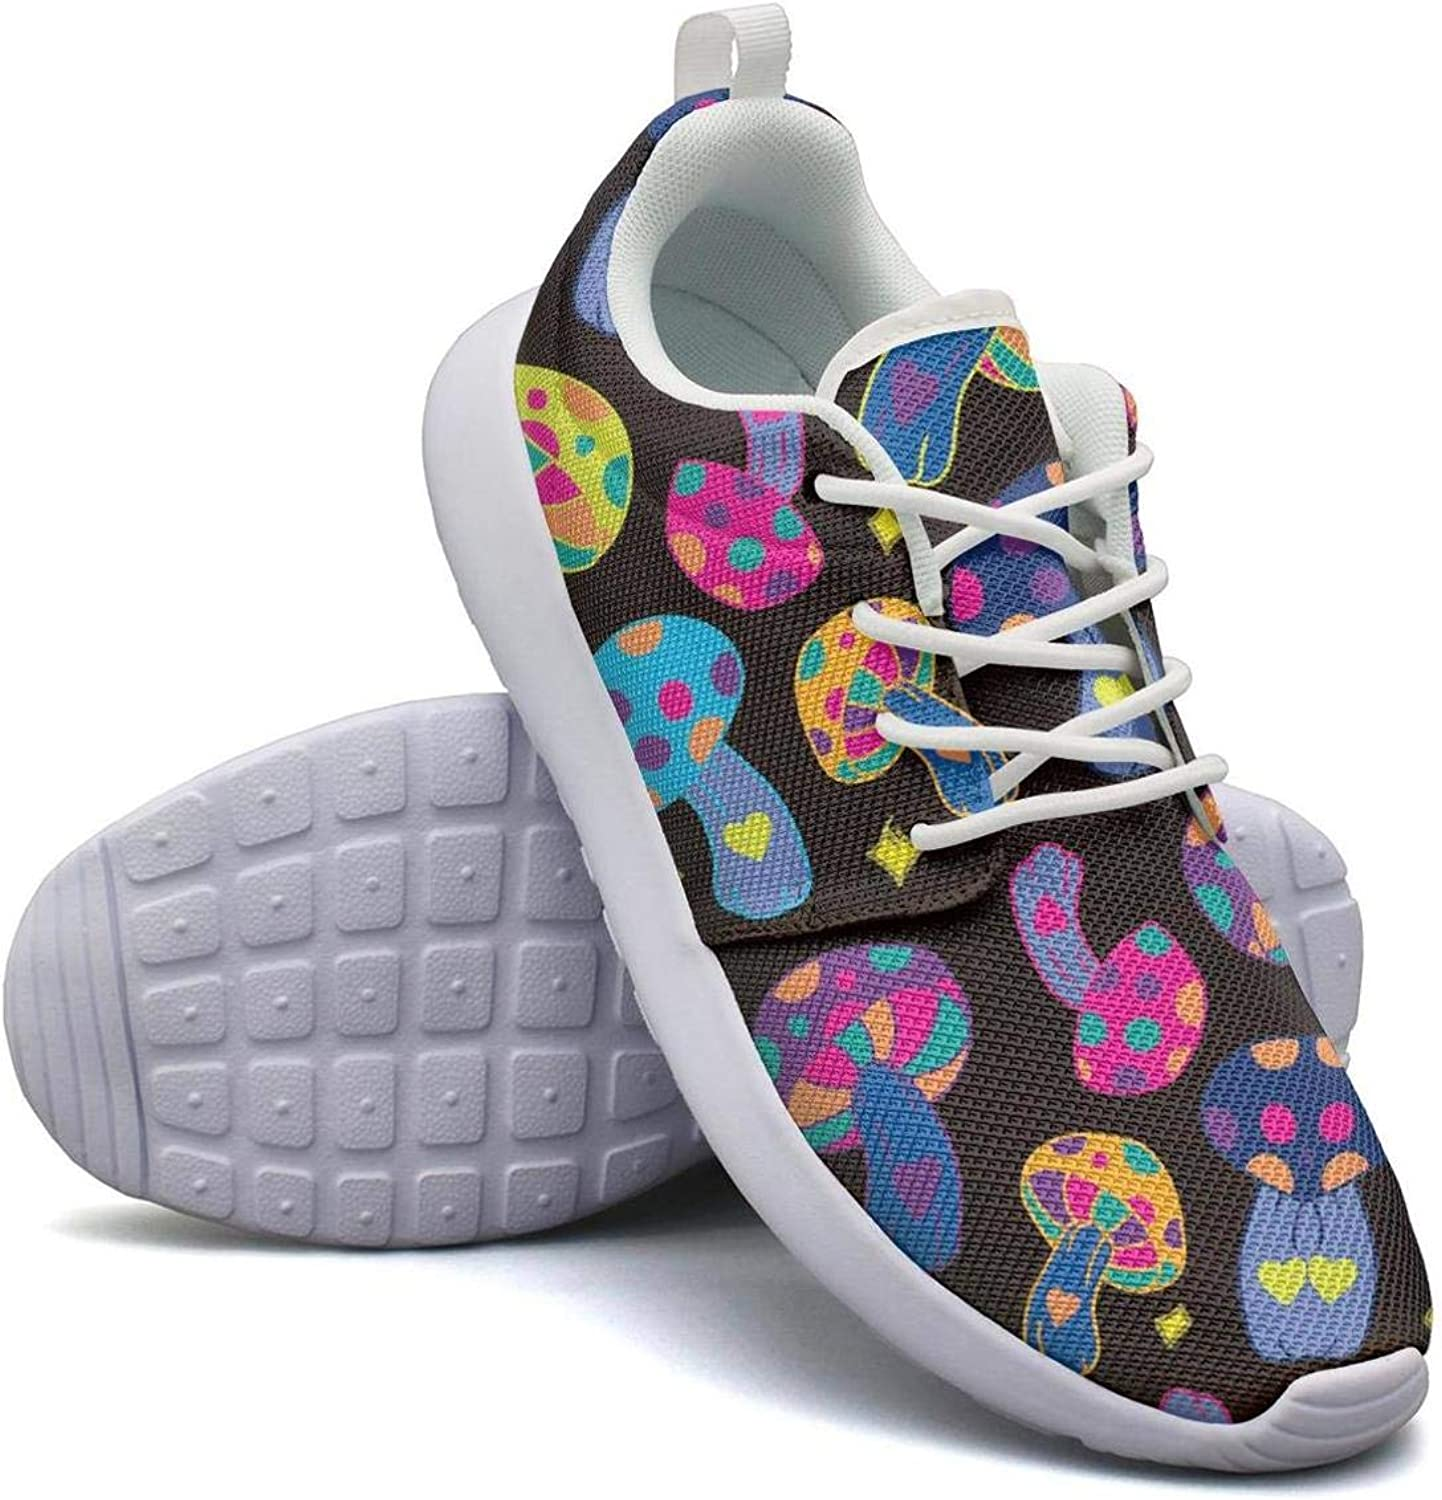 CHALi99 Breathable Lady Lightweight Mesh shoes Rainbow Mushroom Sneakers Trail Running Rubber Sole